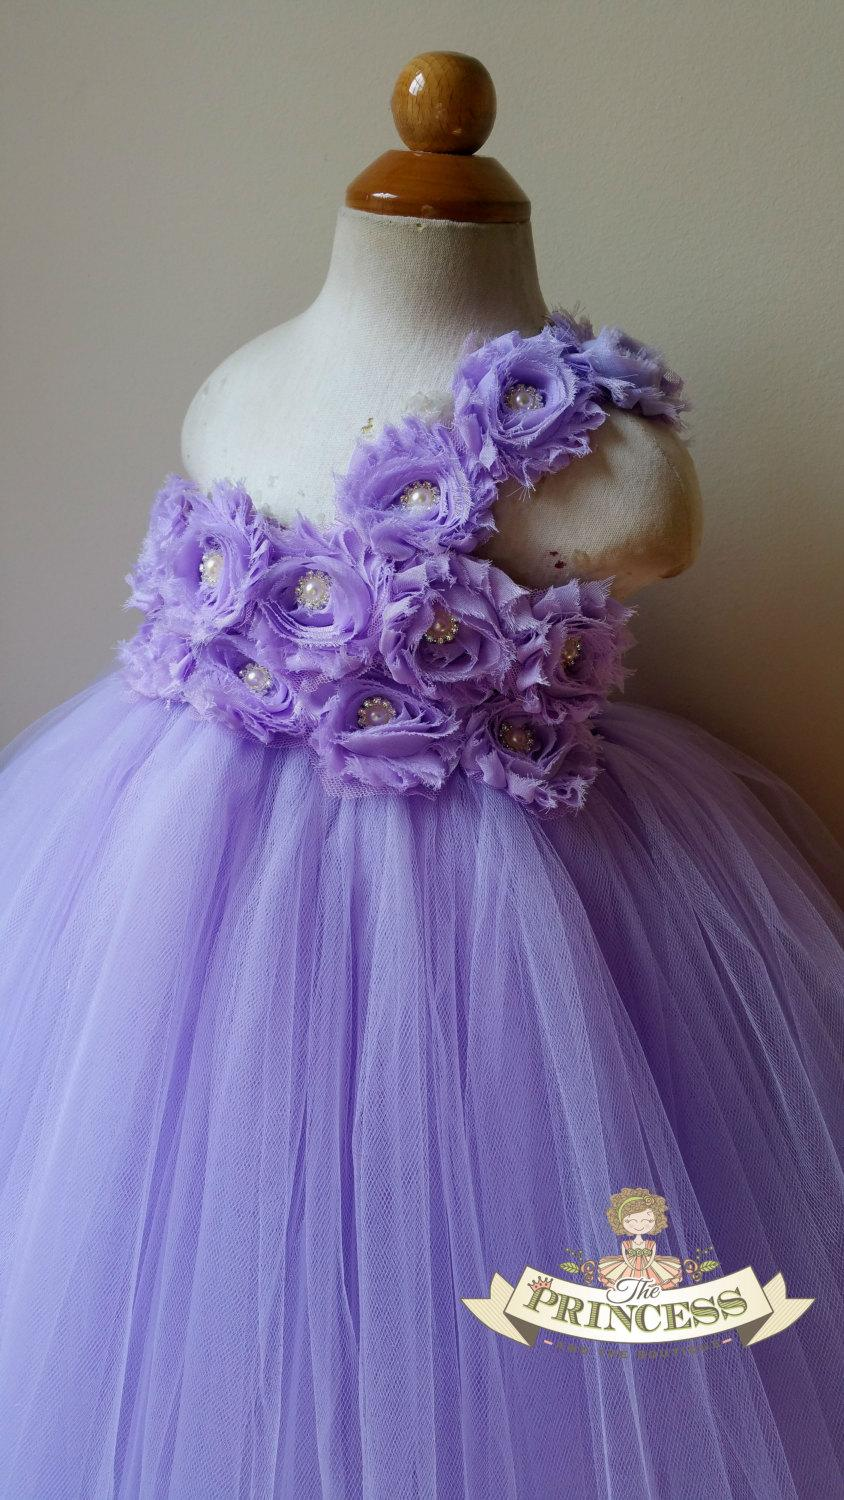 Mariage - Lavender flower girl dress, tutu dress, flower girl dress, baby dress, child dress, birthday outfit, vintage wedding, girl dress, wisteria